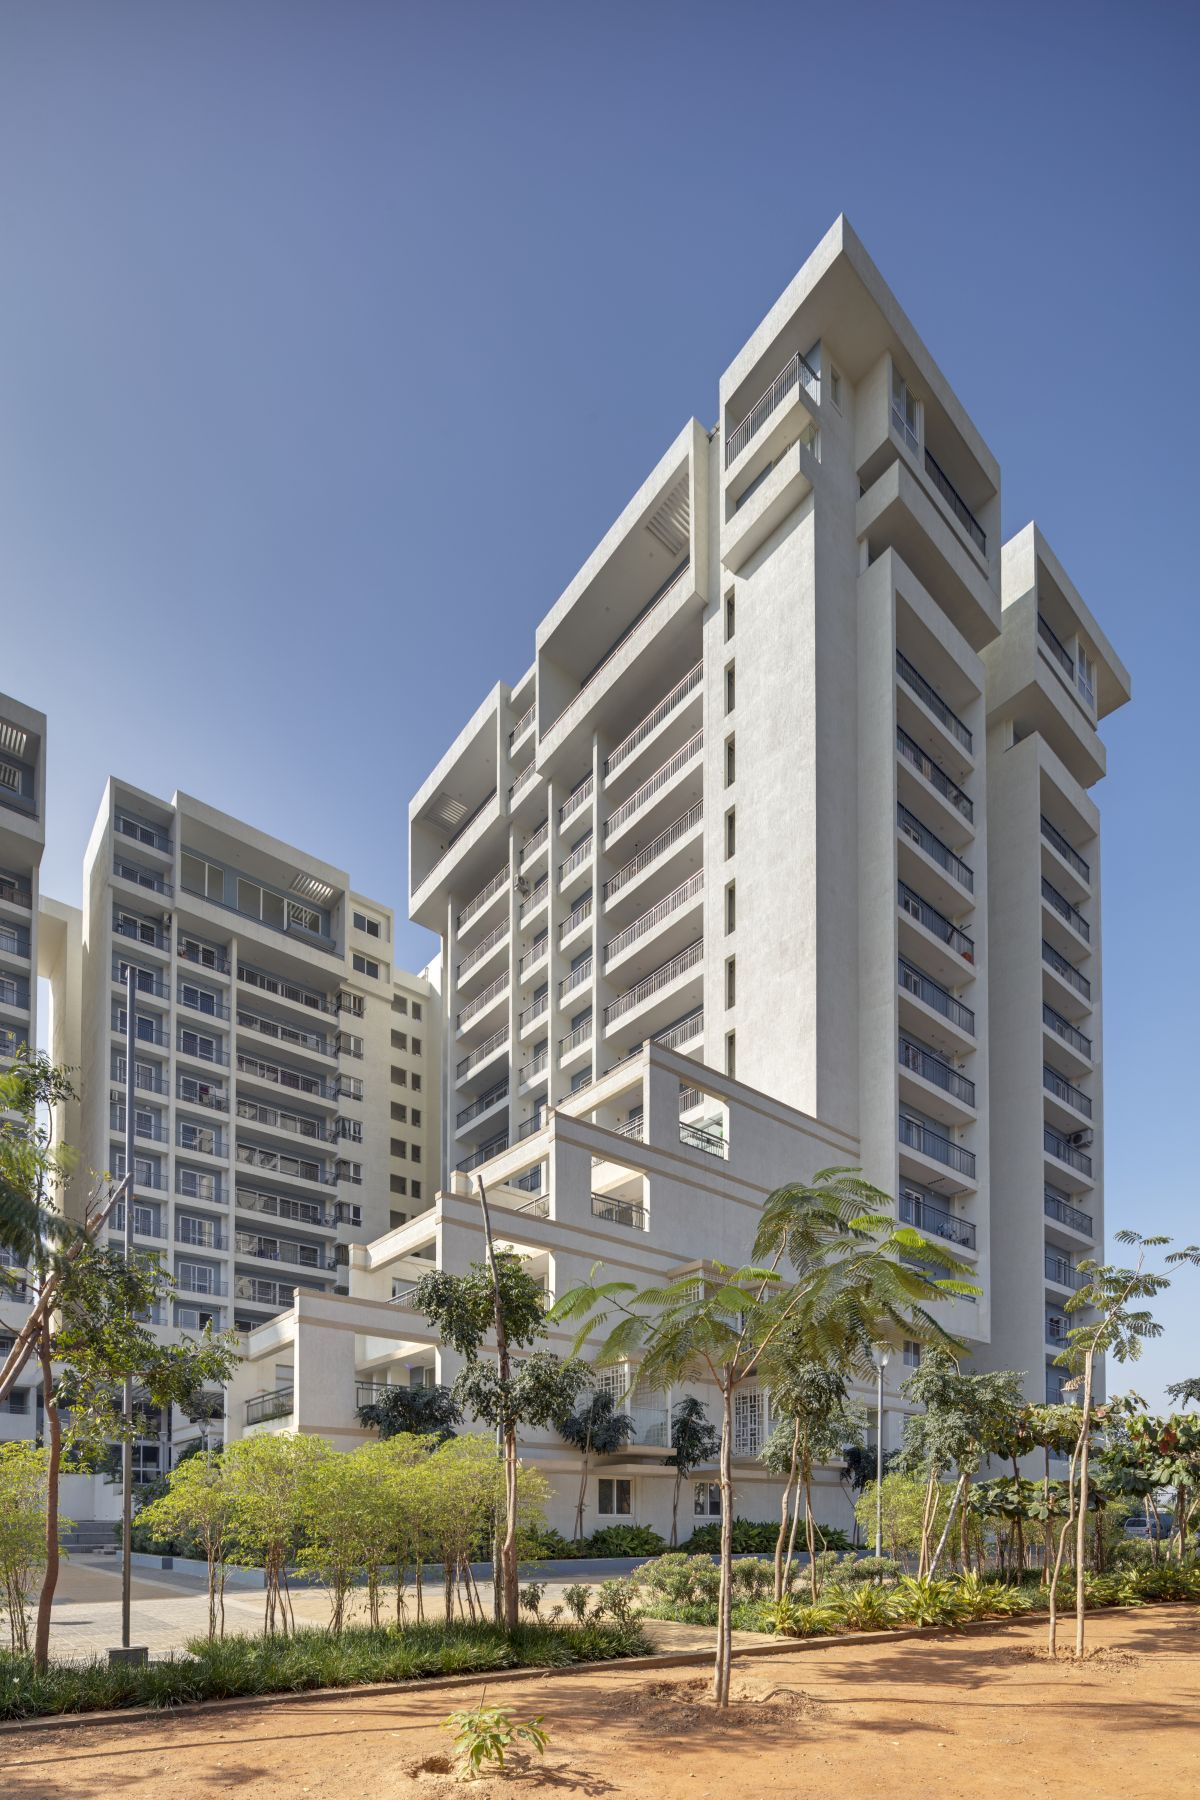 Terraced Residential Highrise, at Nallurhalli Road, Siddhapura, Bangalore, by CnT Architects 8